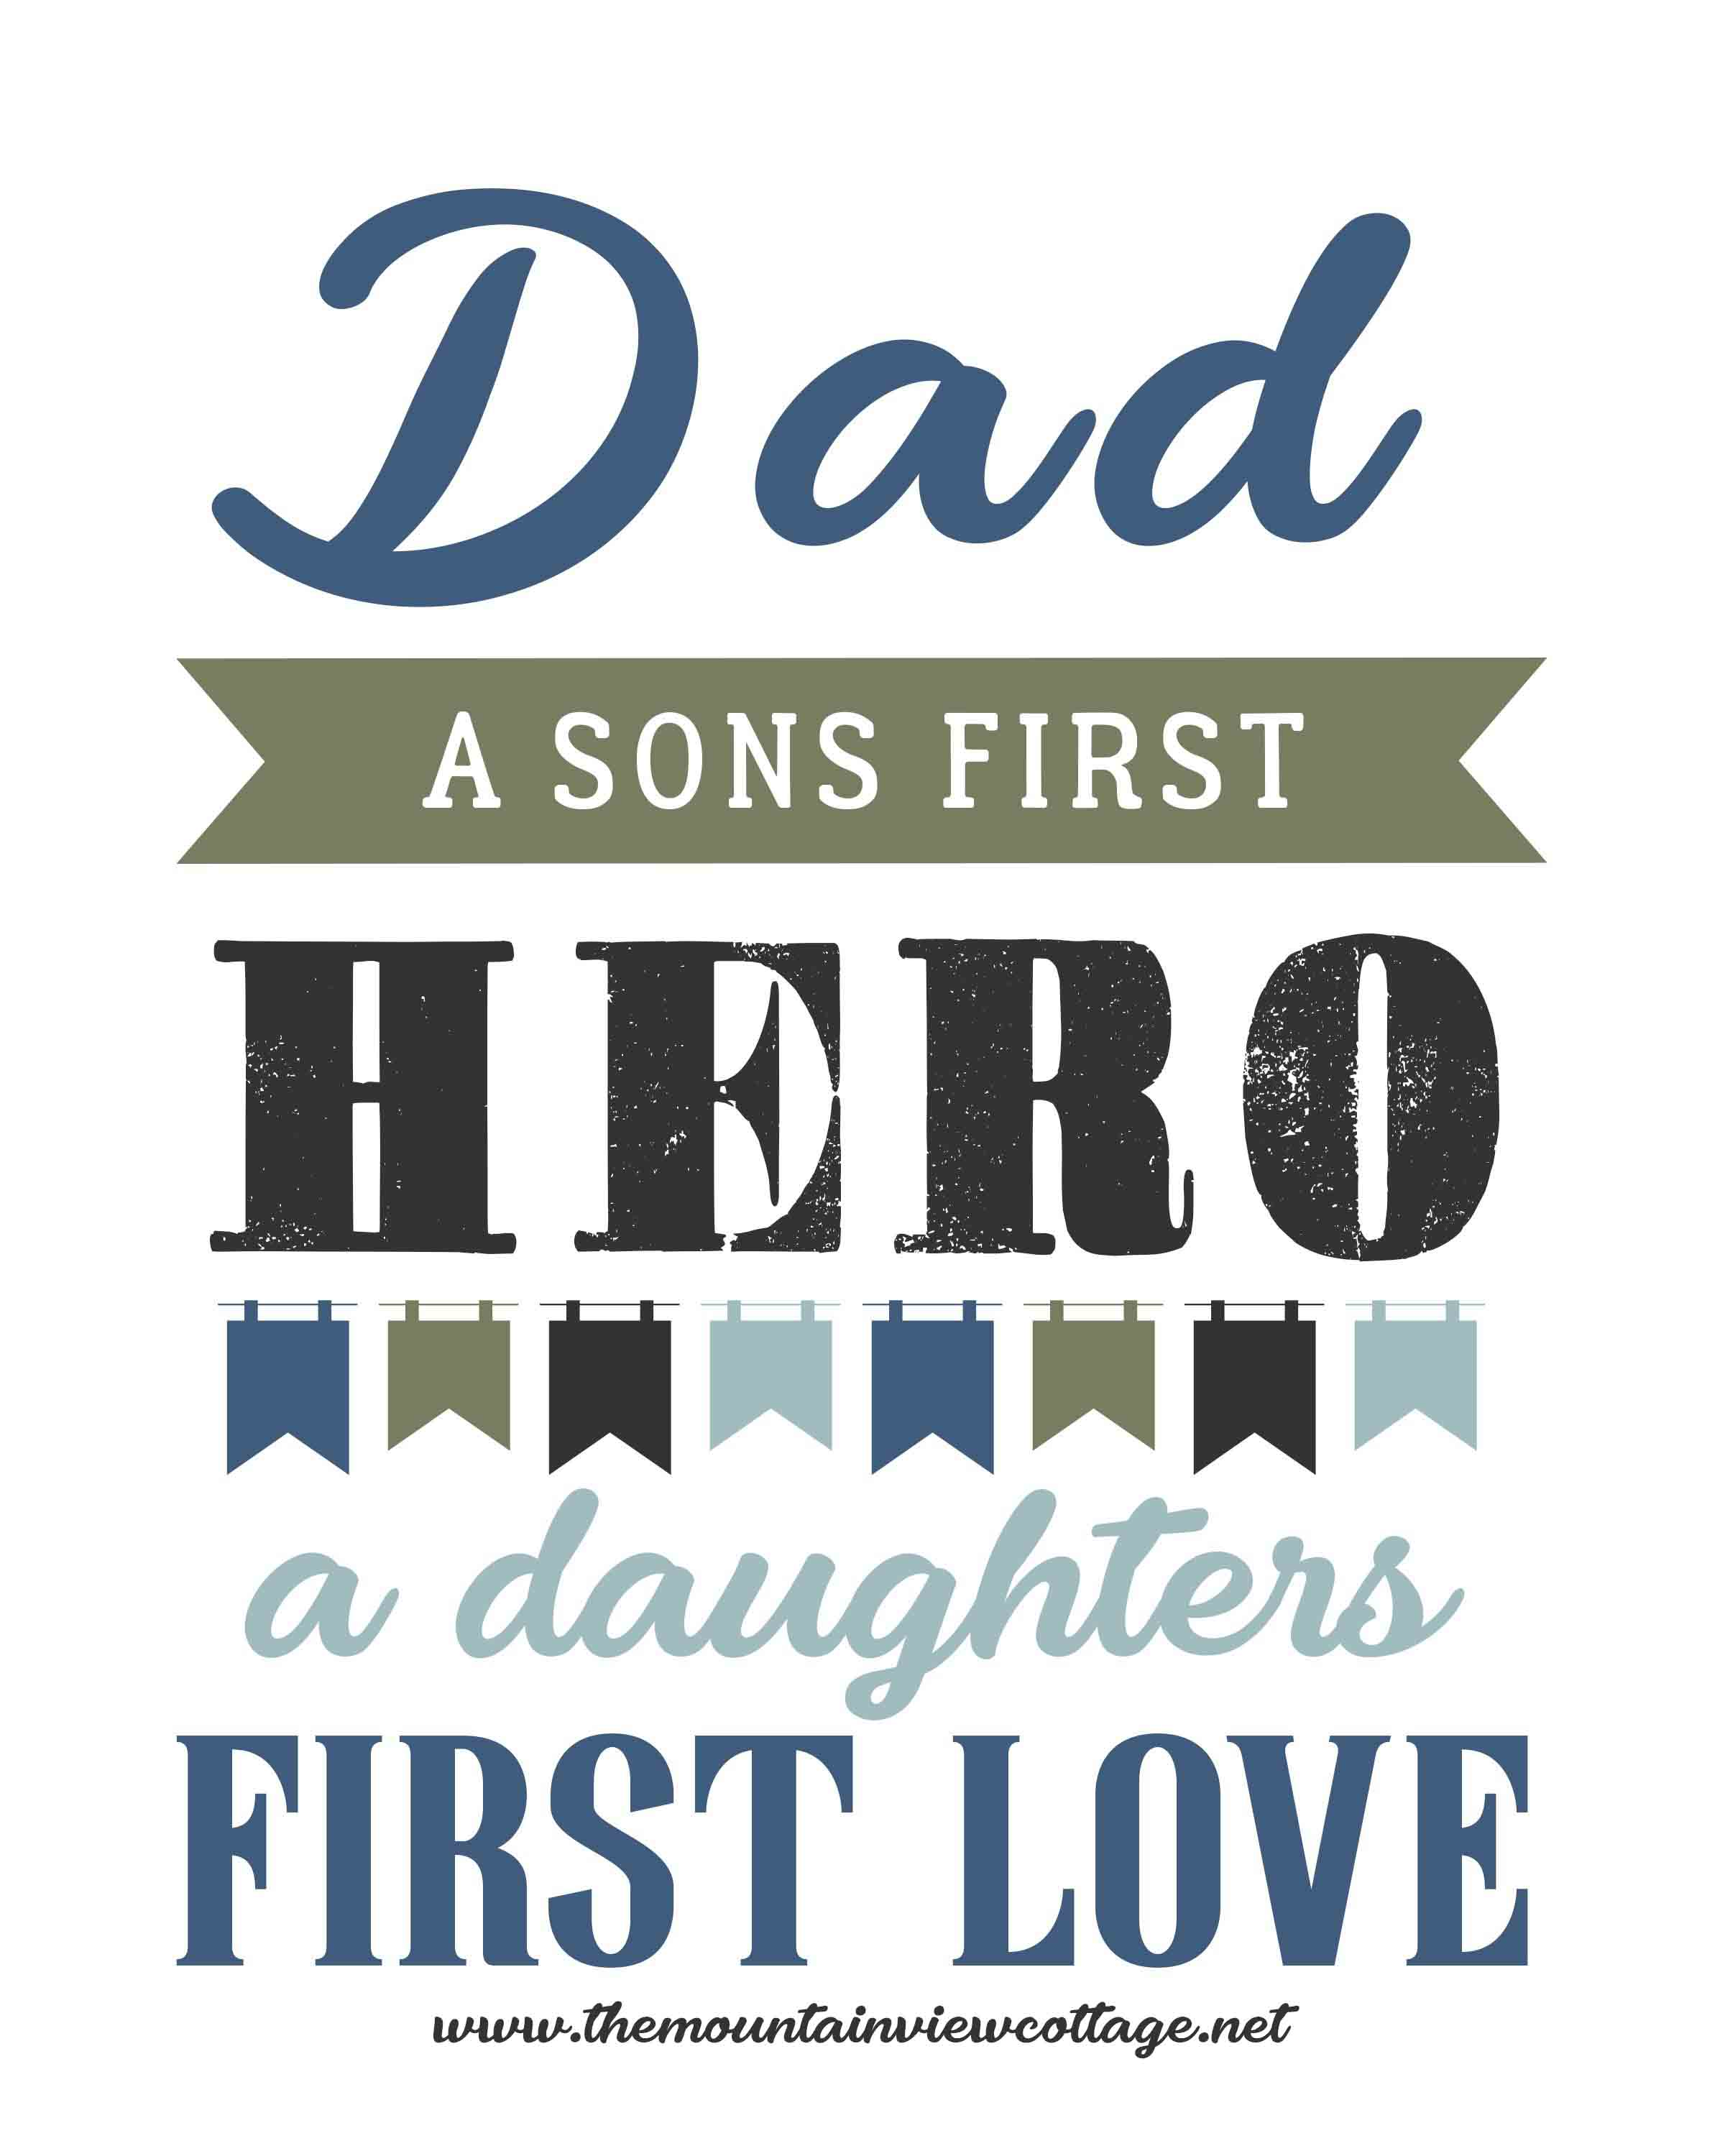 Dad quotes-dad quotes from son-dad quotes from daughter-dad a sons first hero a daughters first love